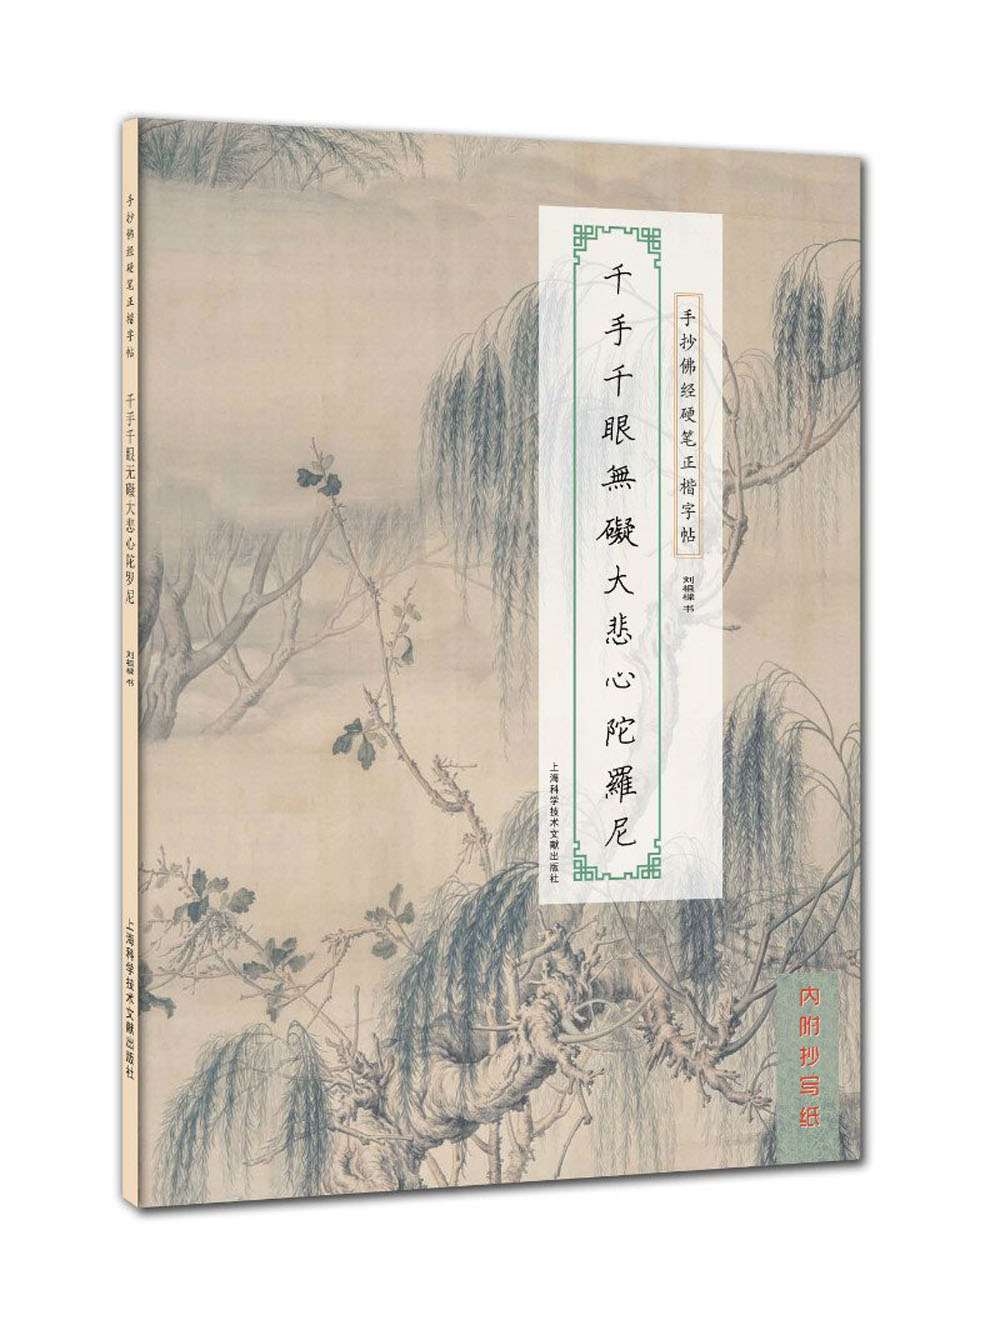 The handwritten Buddhist scriptures in pen copybook series : Qian Shou Wu Yan Da ning Da Bi Xin An luo Ning luo qian yellow 40